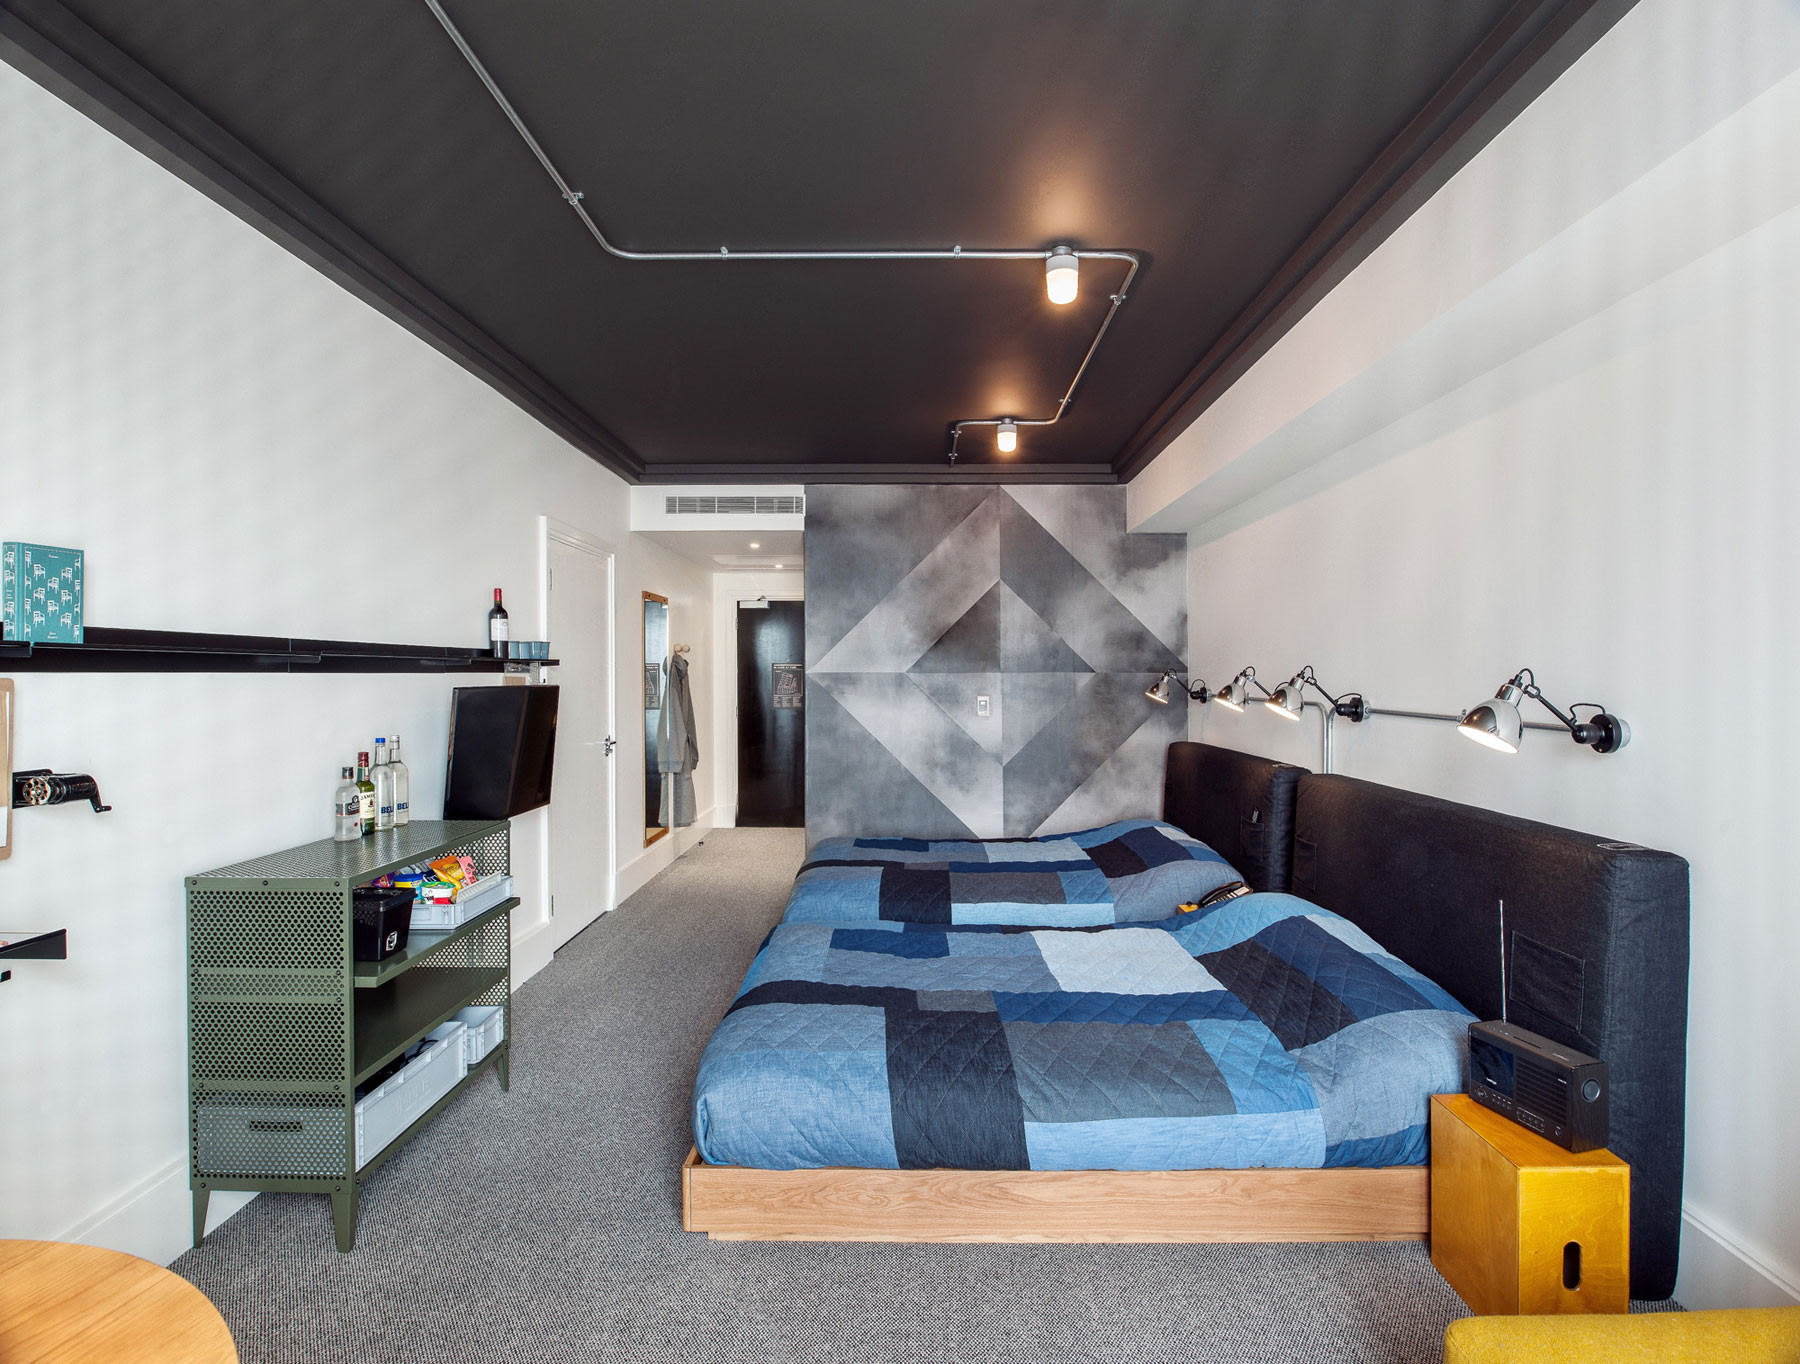 ace hotel london universal design studio archdaily. Black Bedroom Furniture Sets. Home Design Ideas